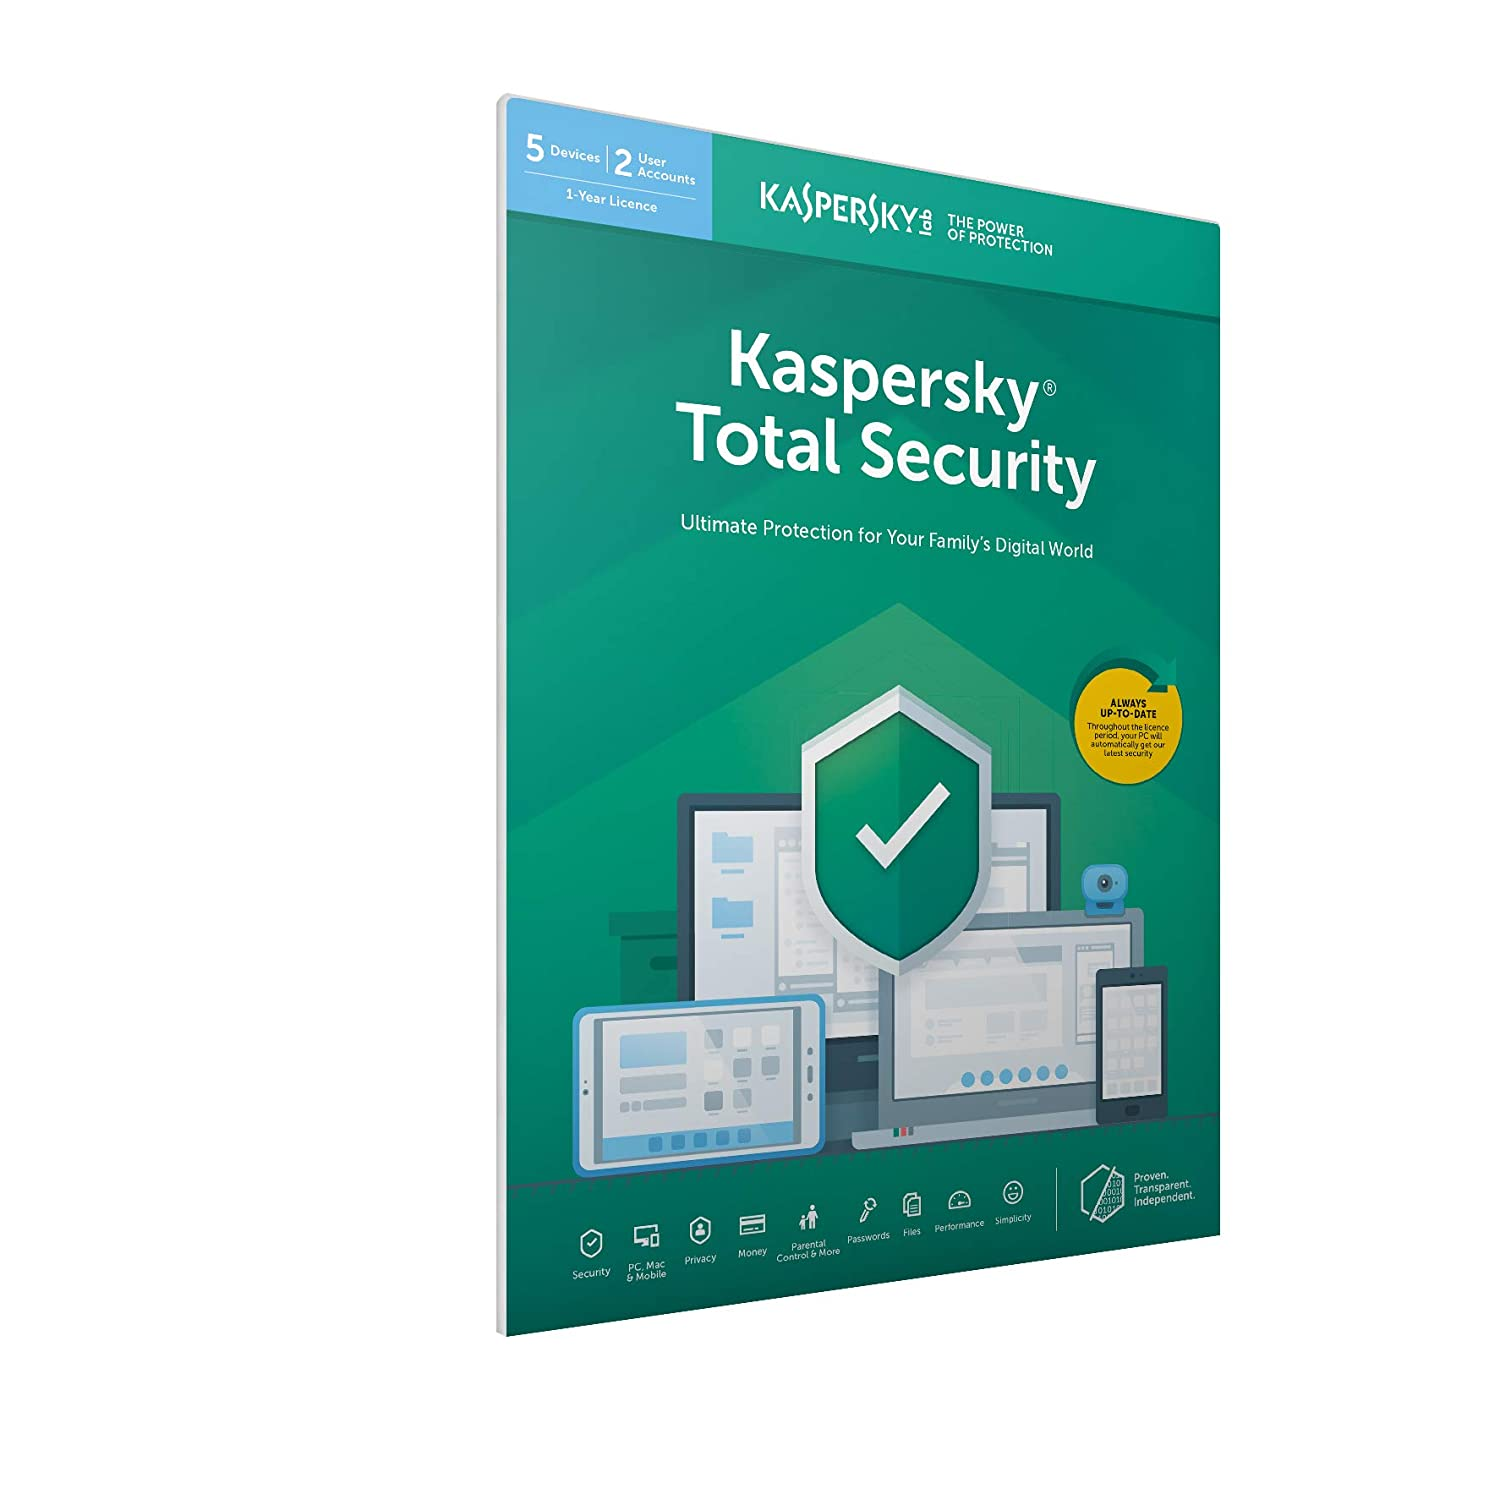 kaspersky total security 2018 key 365 days